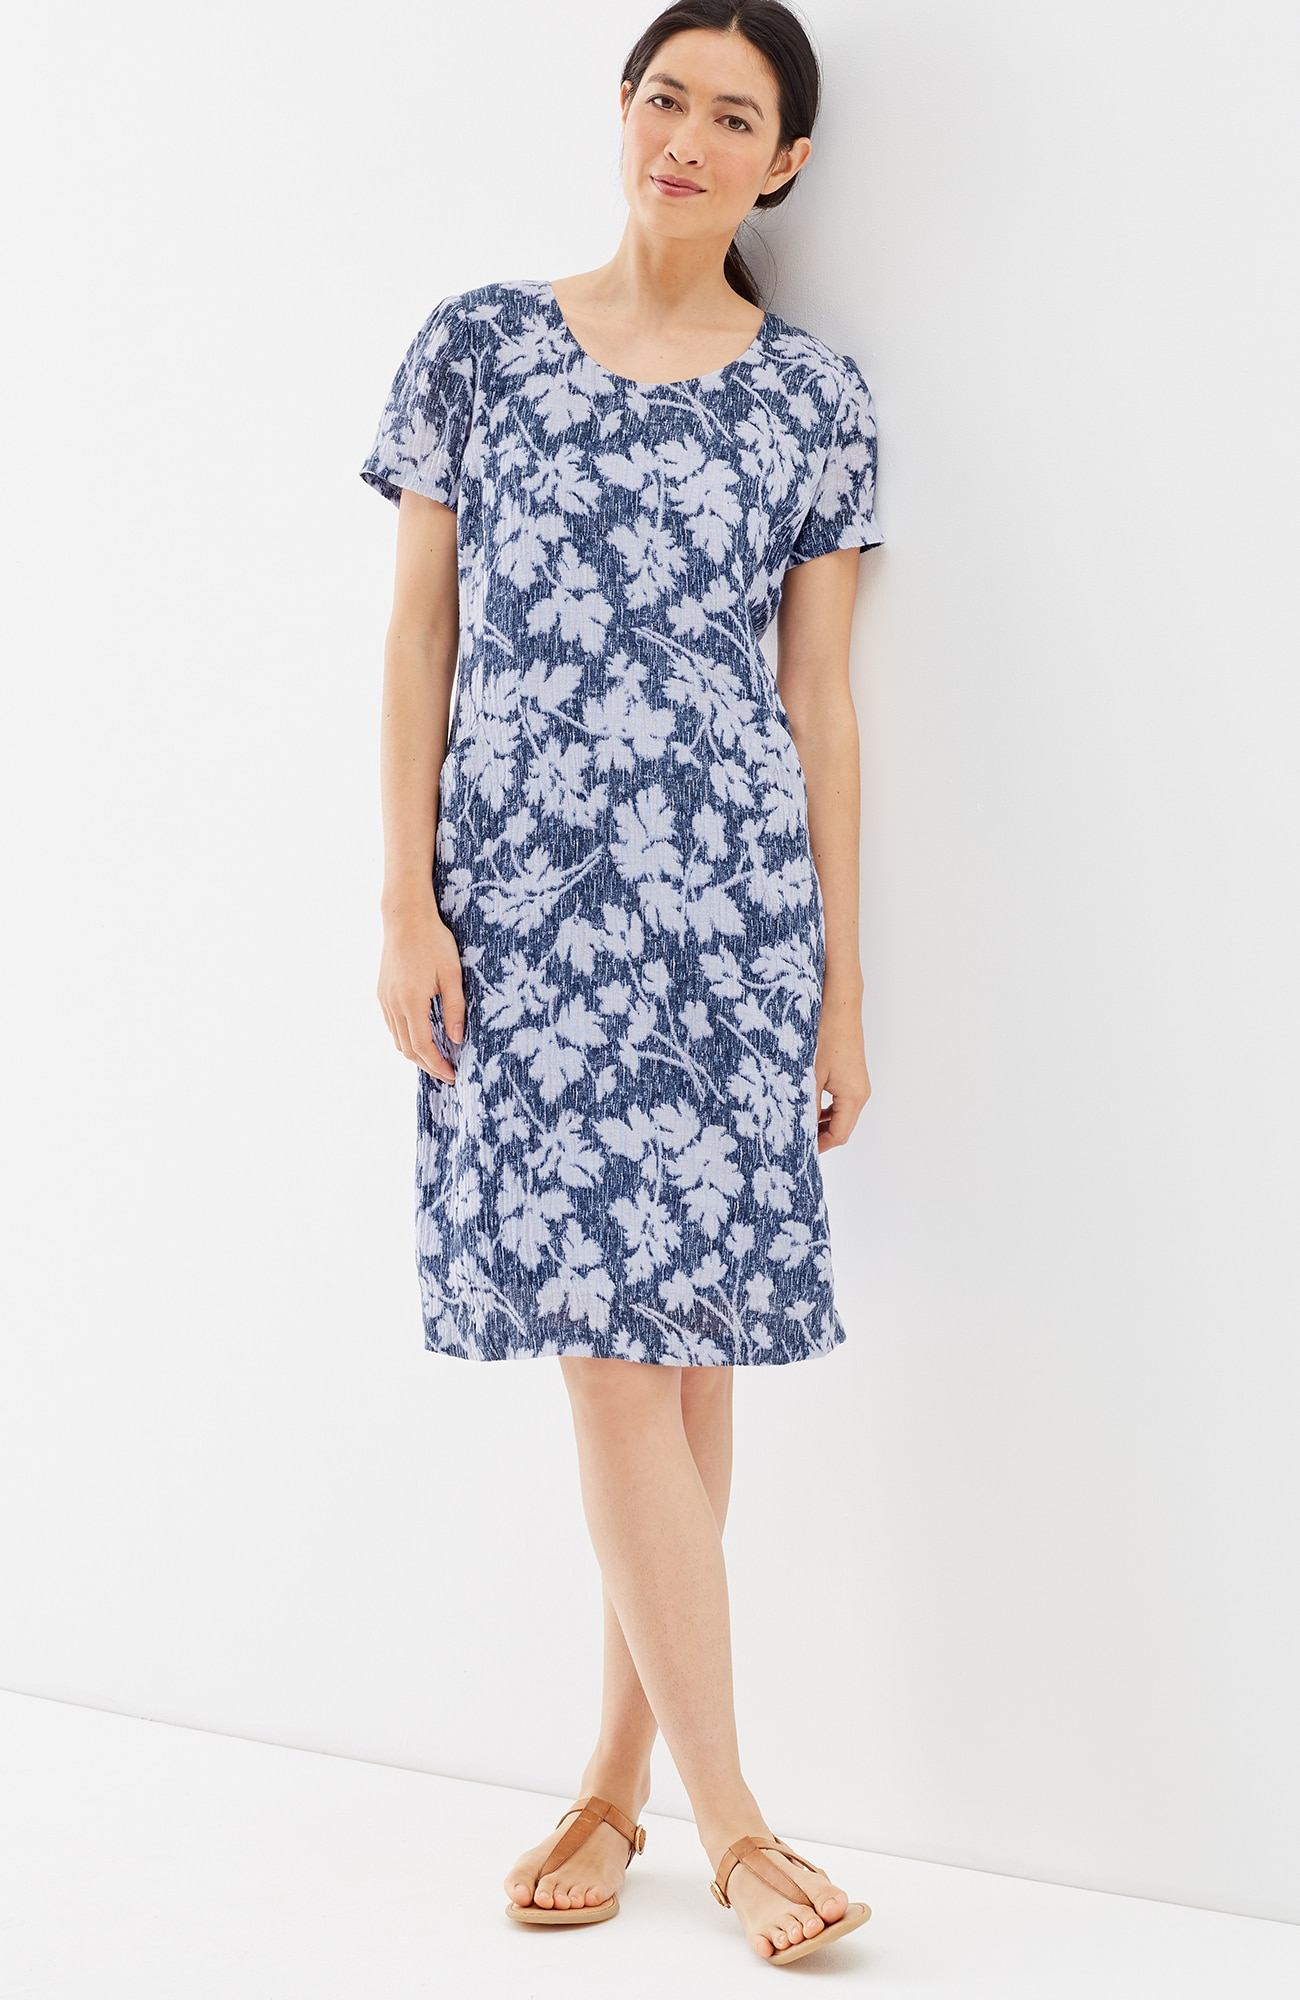 Pure Jill crinkled-linen scoop-neck dress